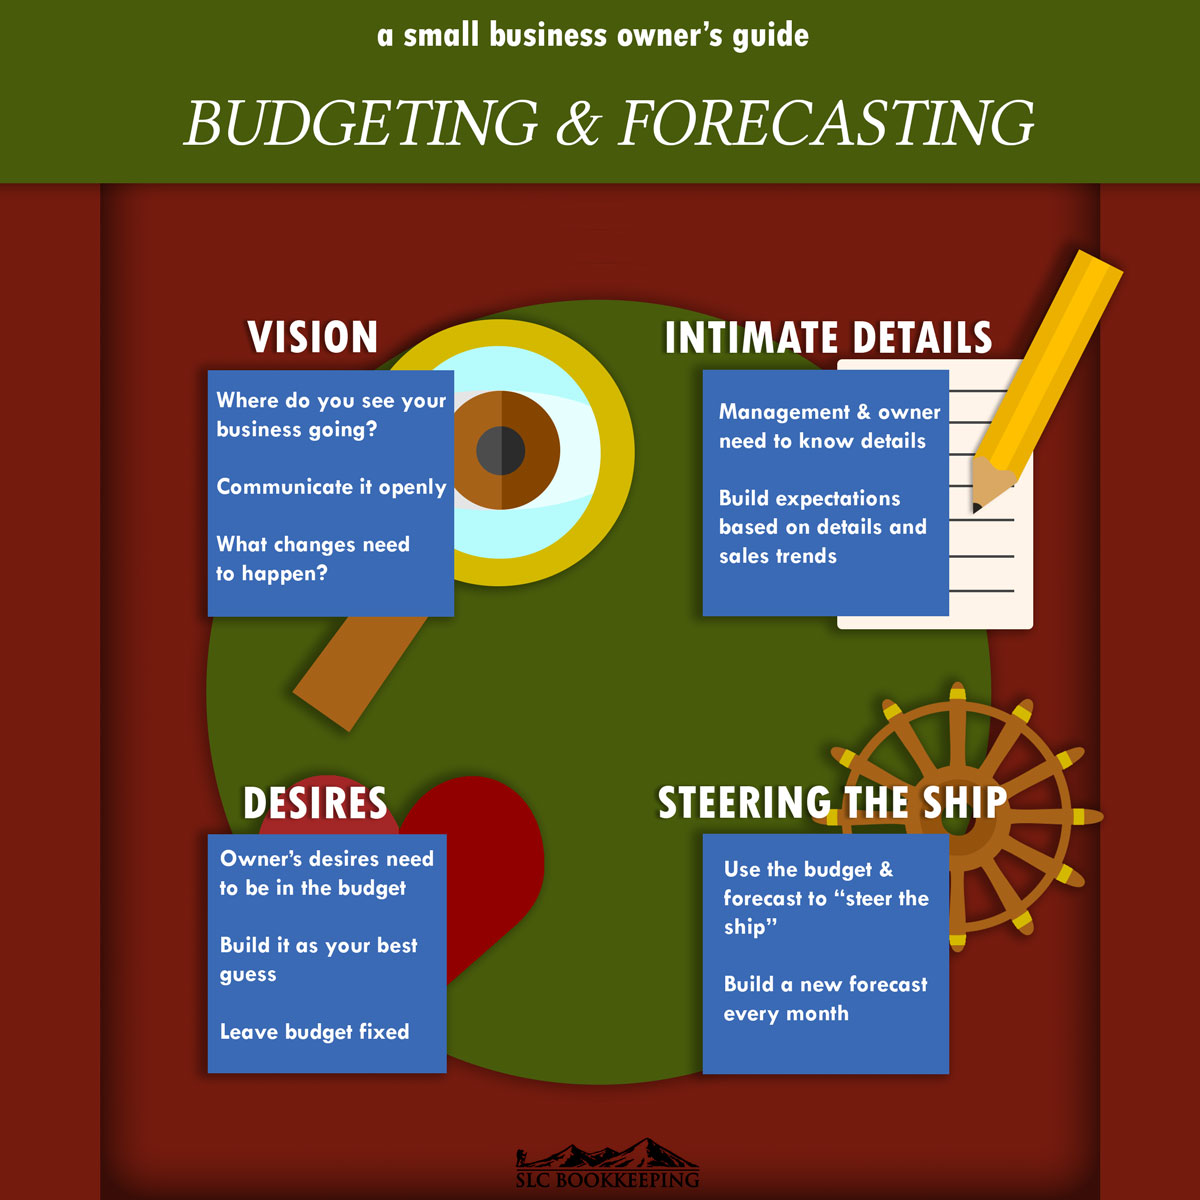 Small Business Budgeting and Forecasting Model